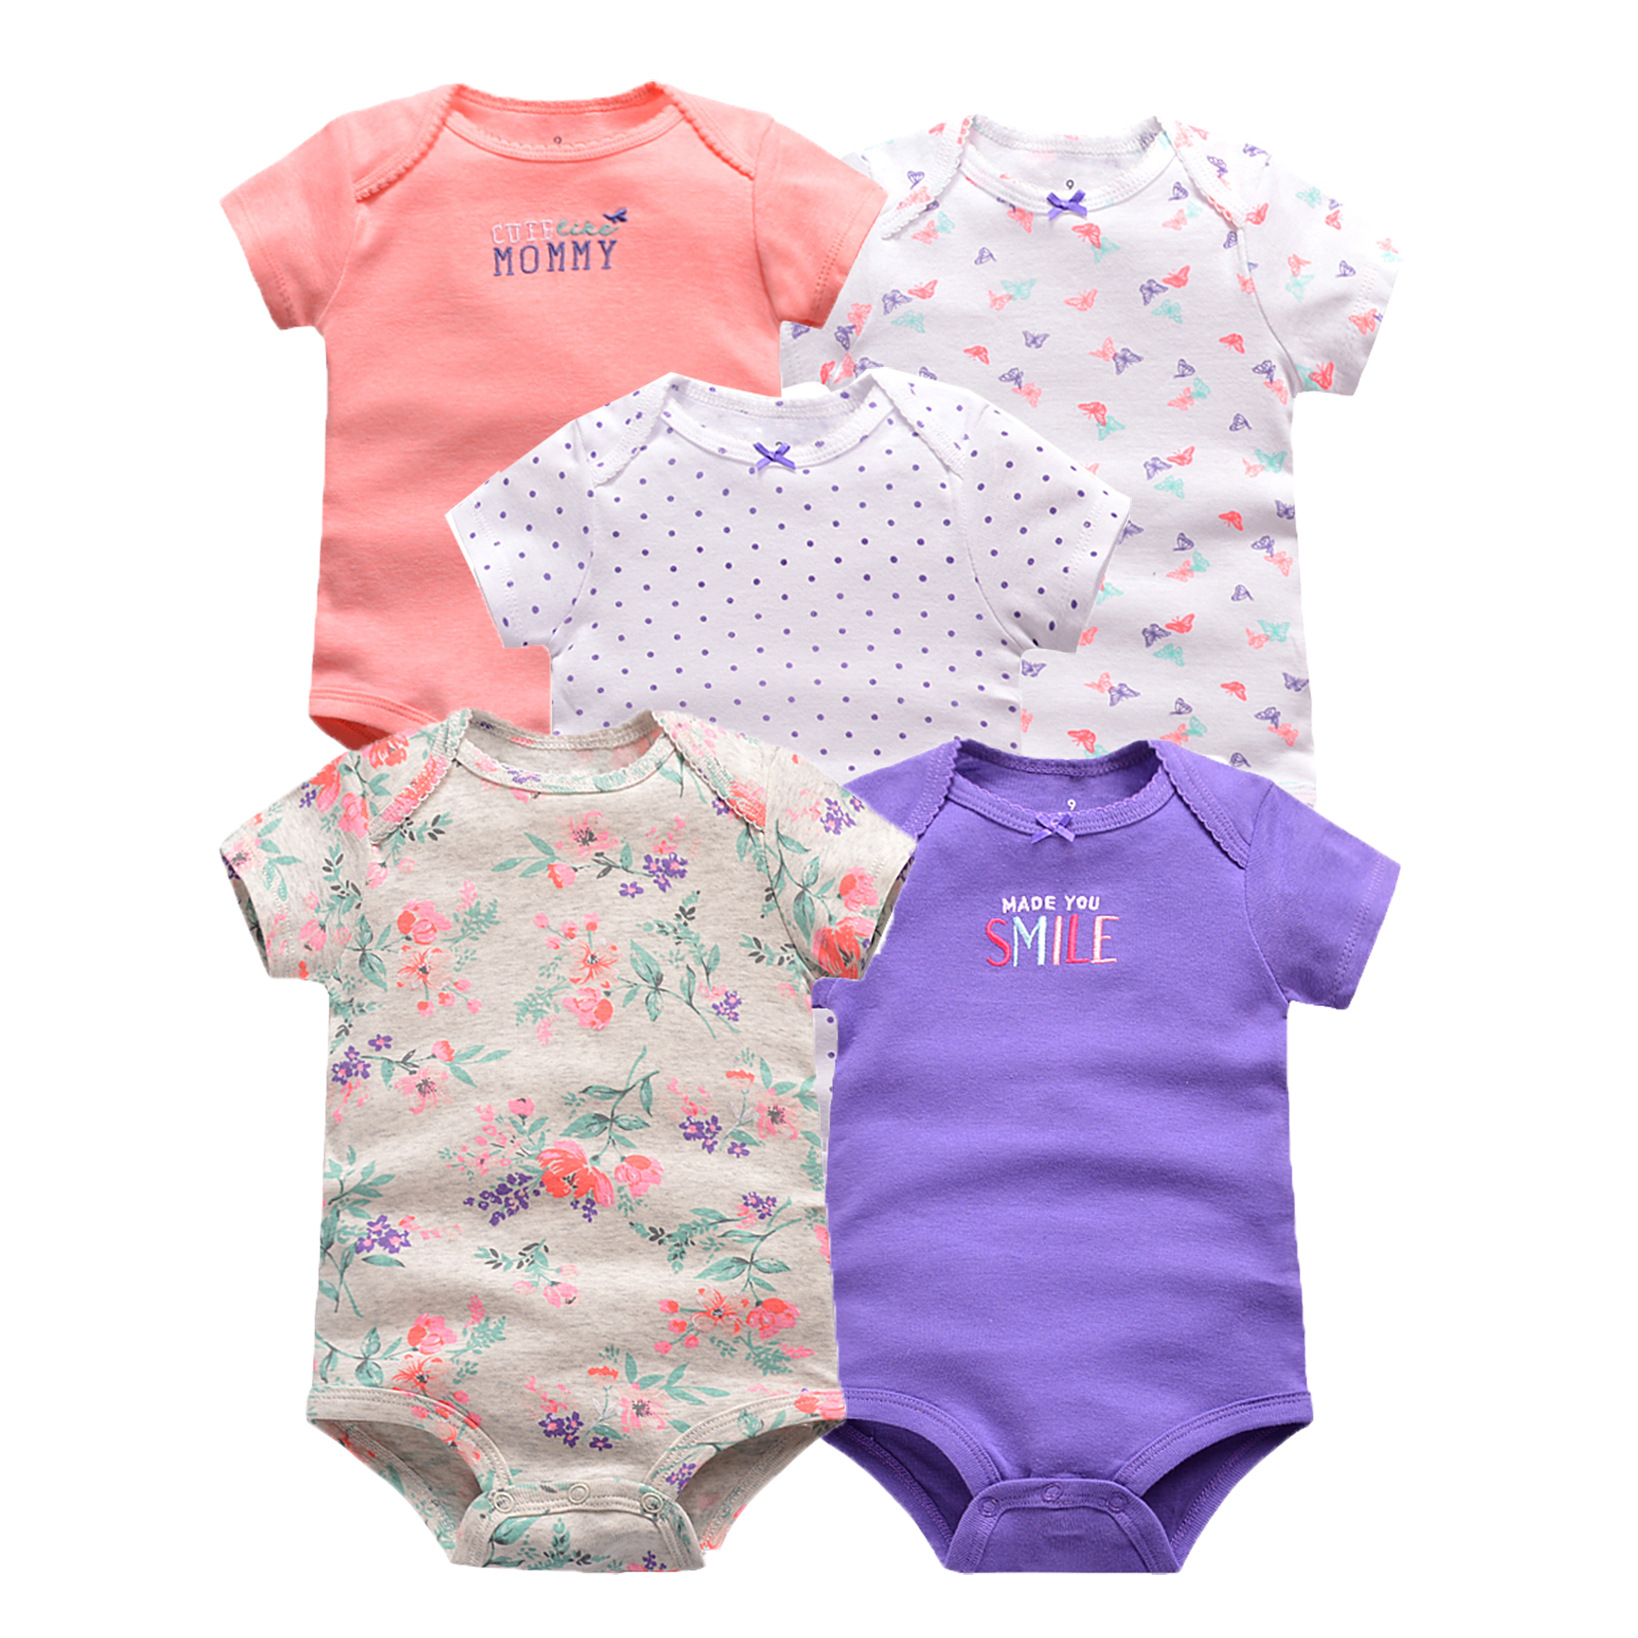 5pcs/4pcs/pack Baby Girl Clothes Short Sleeve Baby Bodysuits Cotton Children Pink Bodysuit Baby Girl Clothes For Body Pajamas